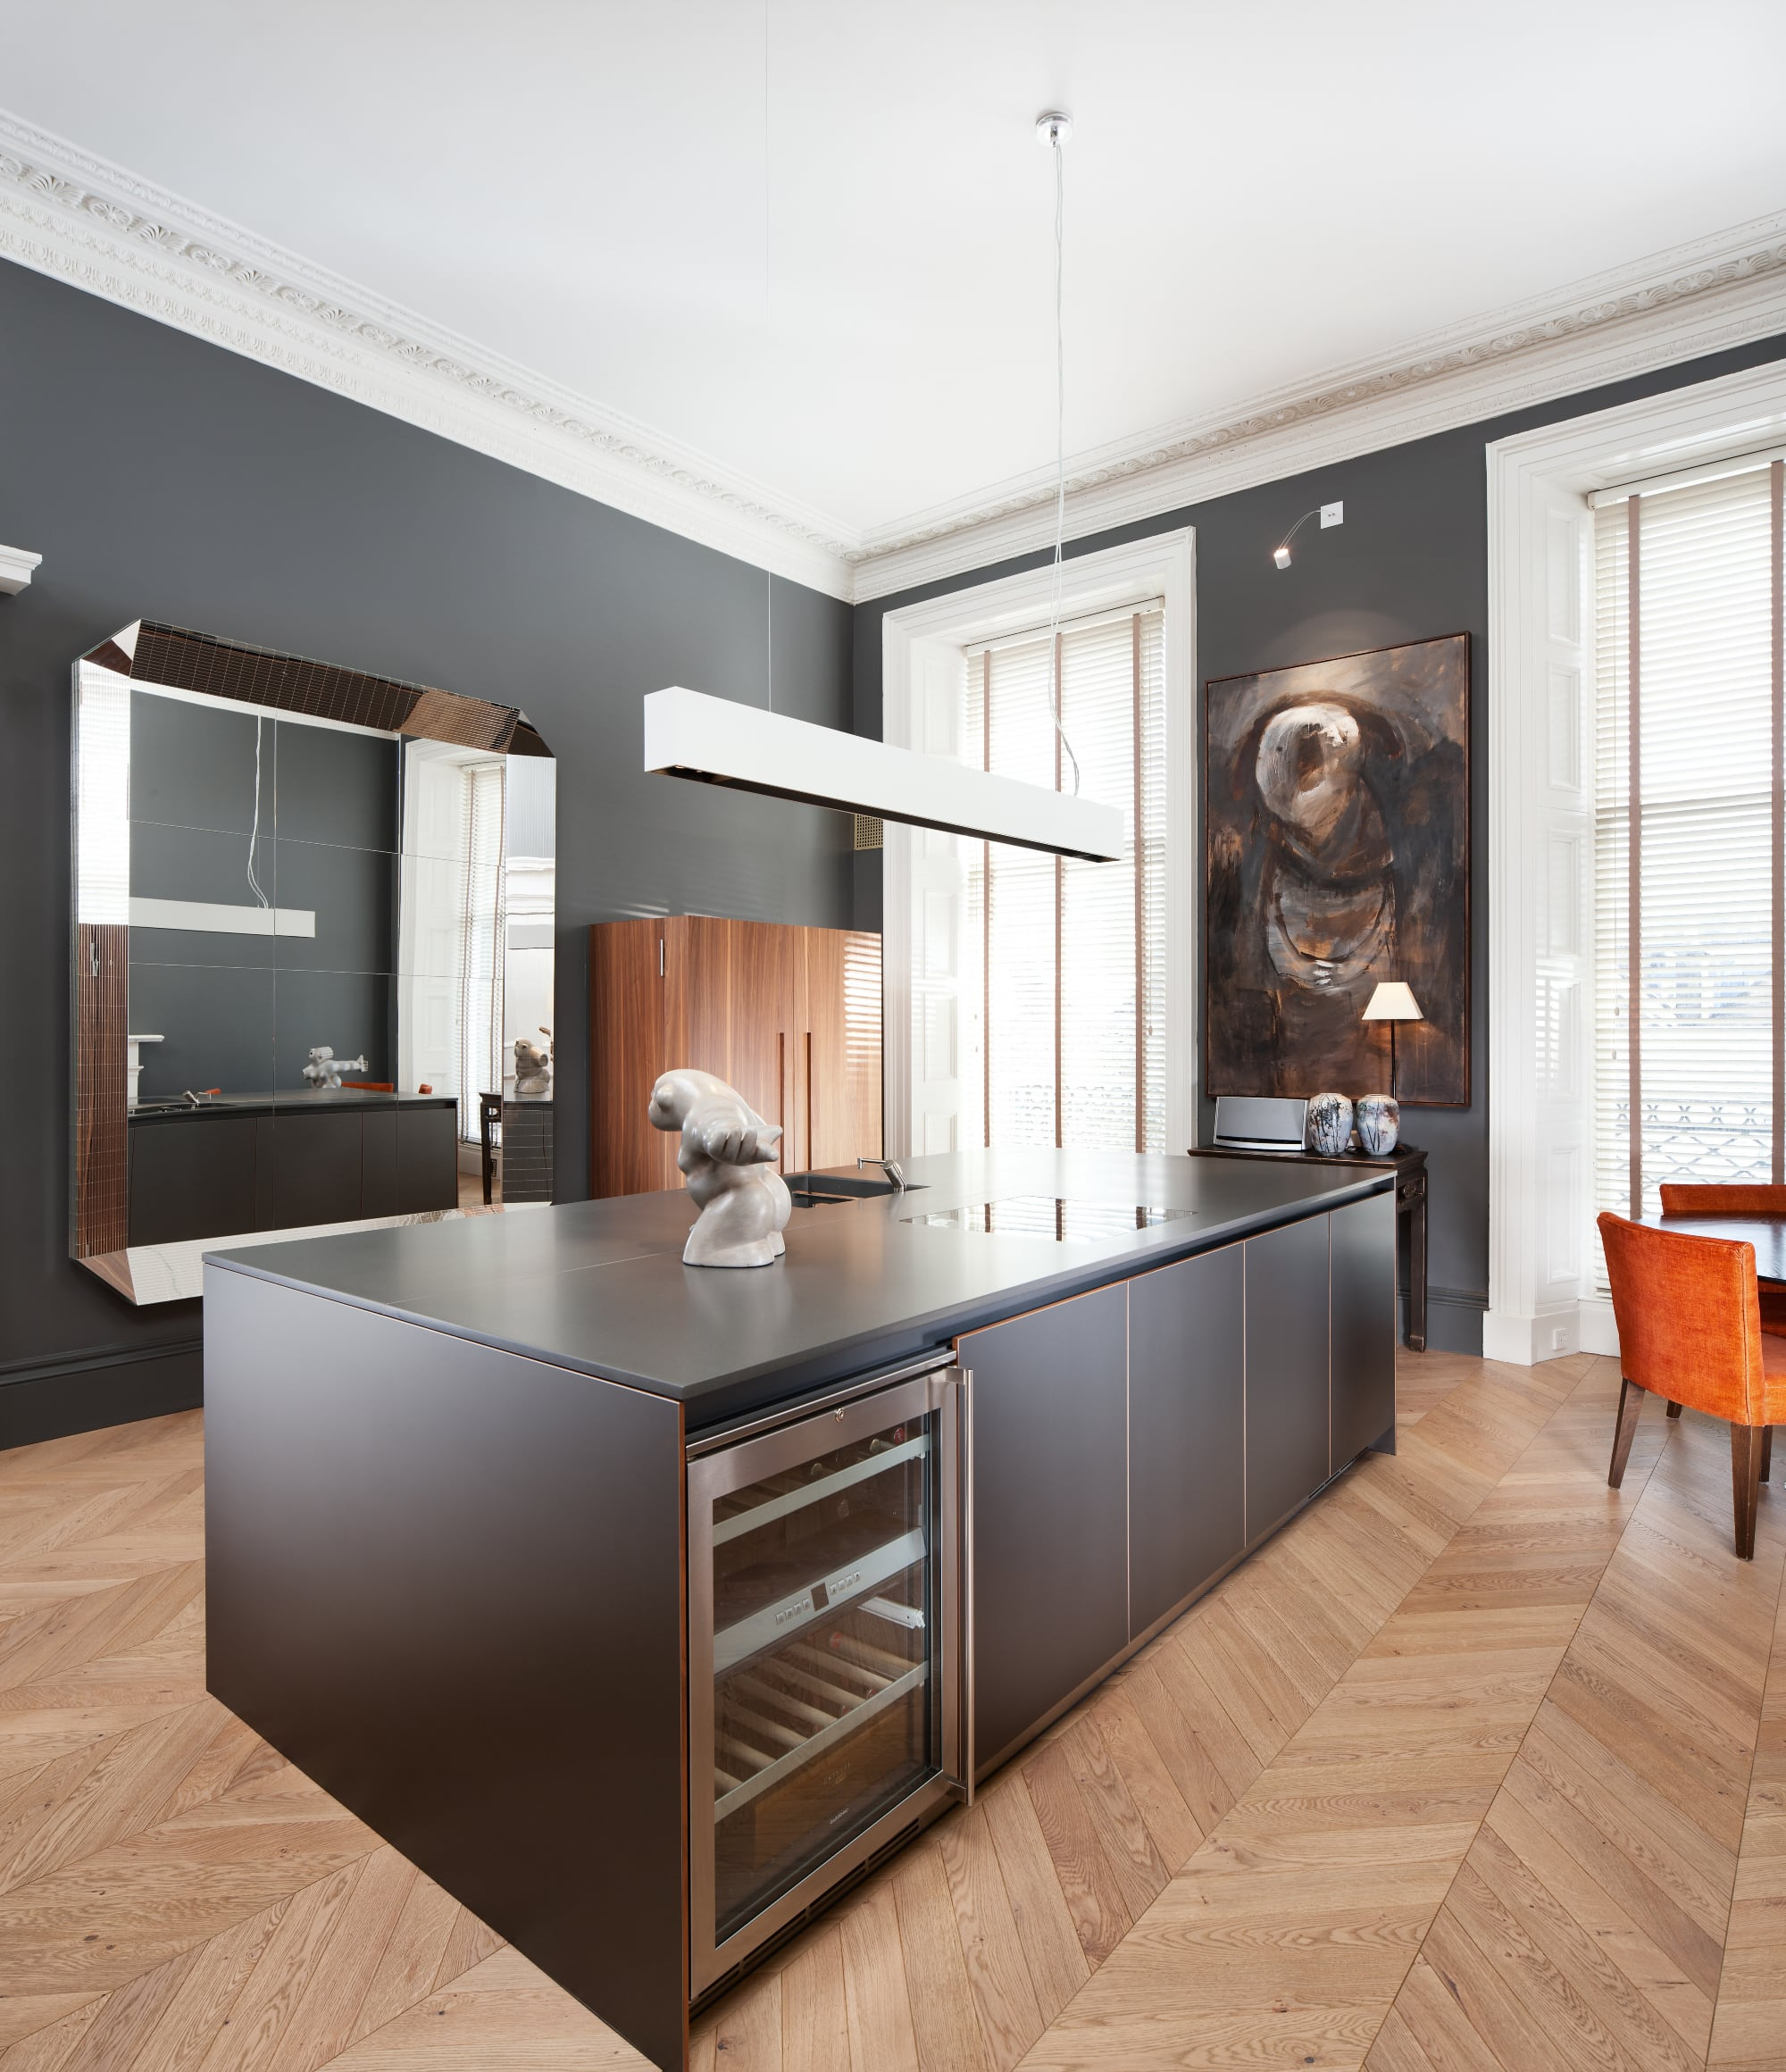 Bulthaup B3 Bulthaup B3 Drama | German Kitchen | Cameron Interiors